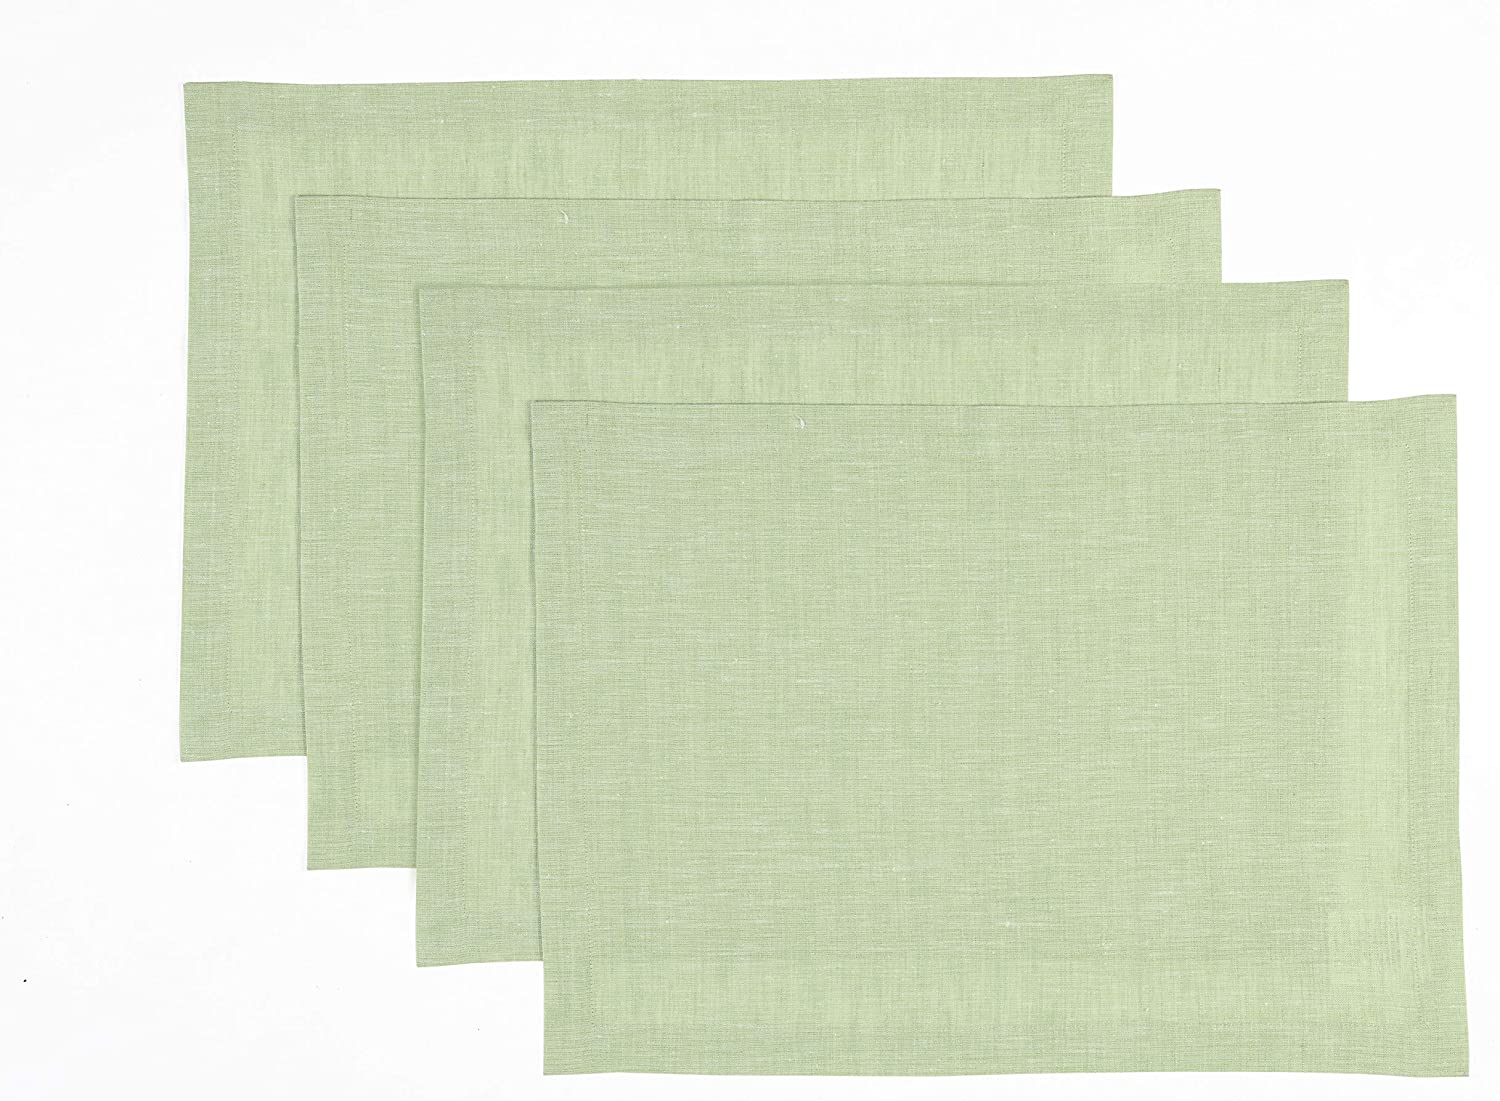 Solino Home Pure Linen Placemats - Green, 14 x 19 Inch Set of 4 Athena - 100% Pure Linen Natural Fabric - Handcrafted Machine Washable